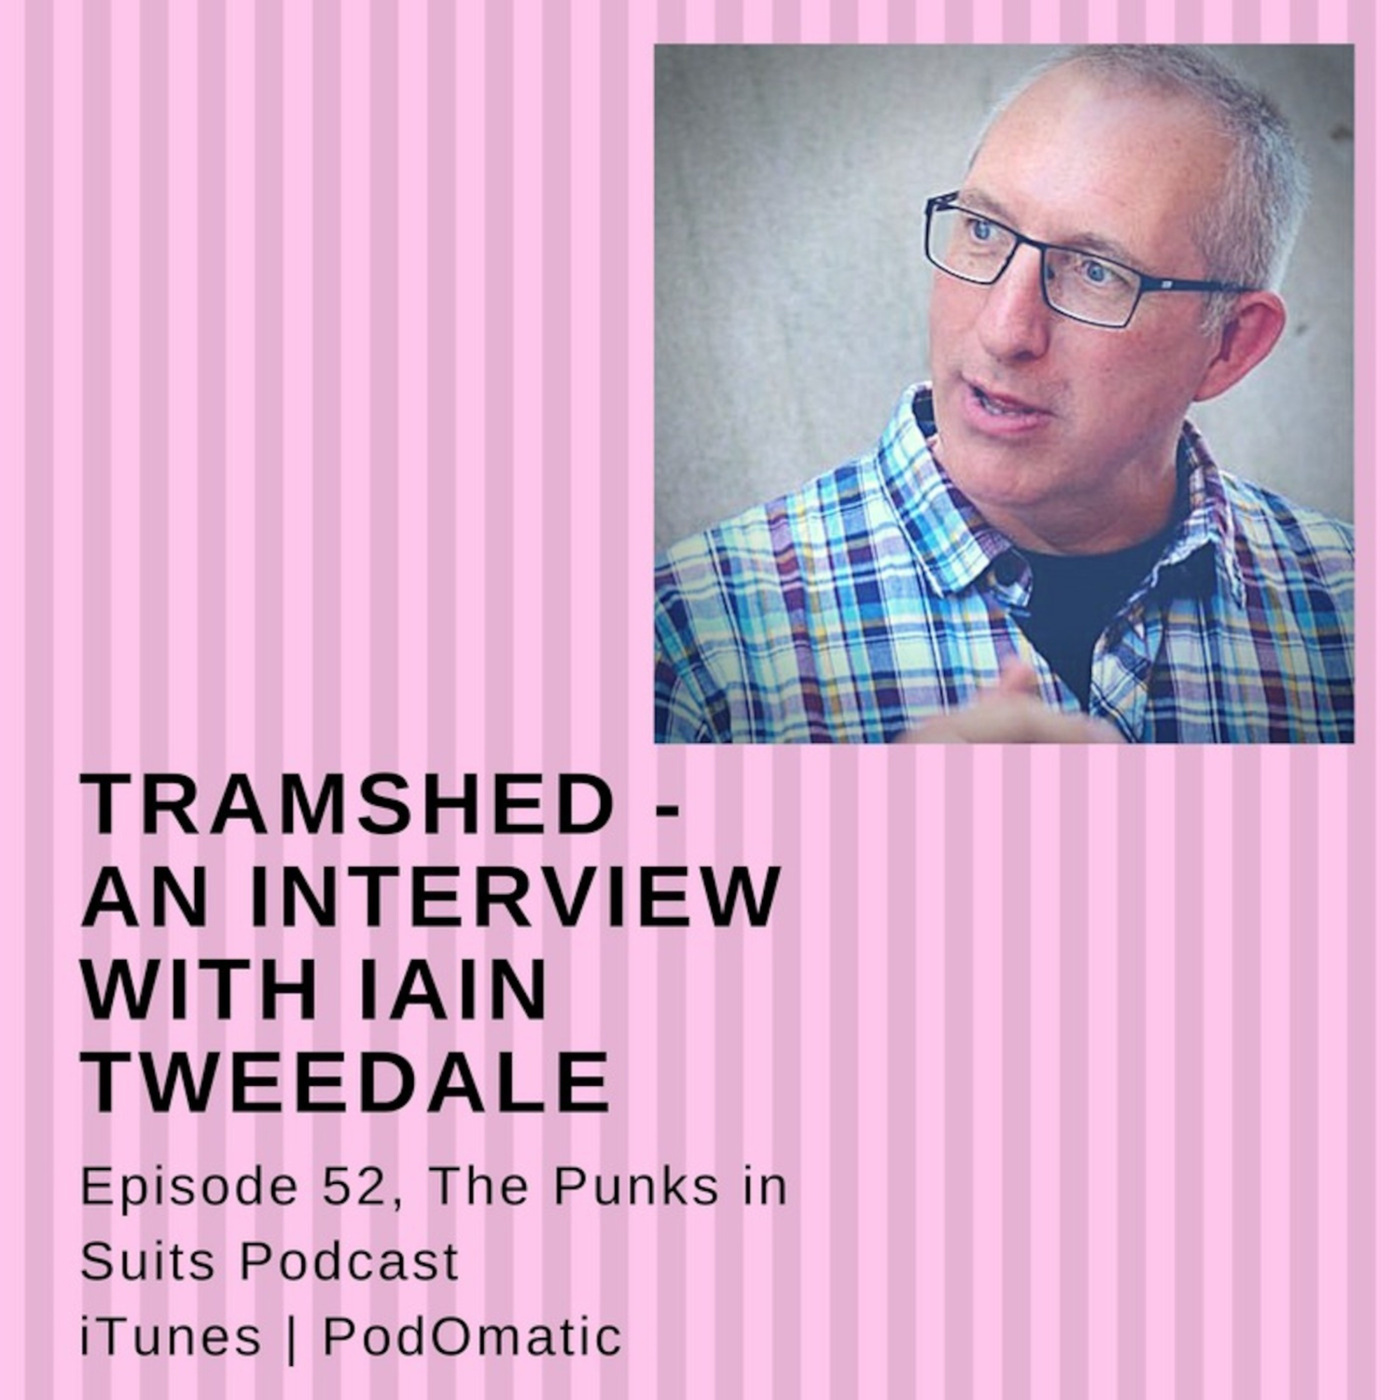 Episode 52: Tramshed - An interview with Iain Tweedale